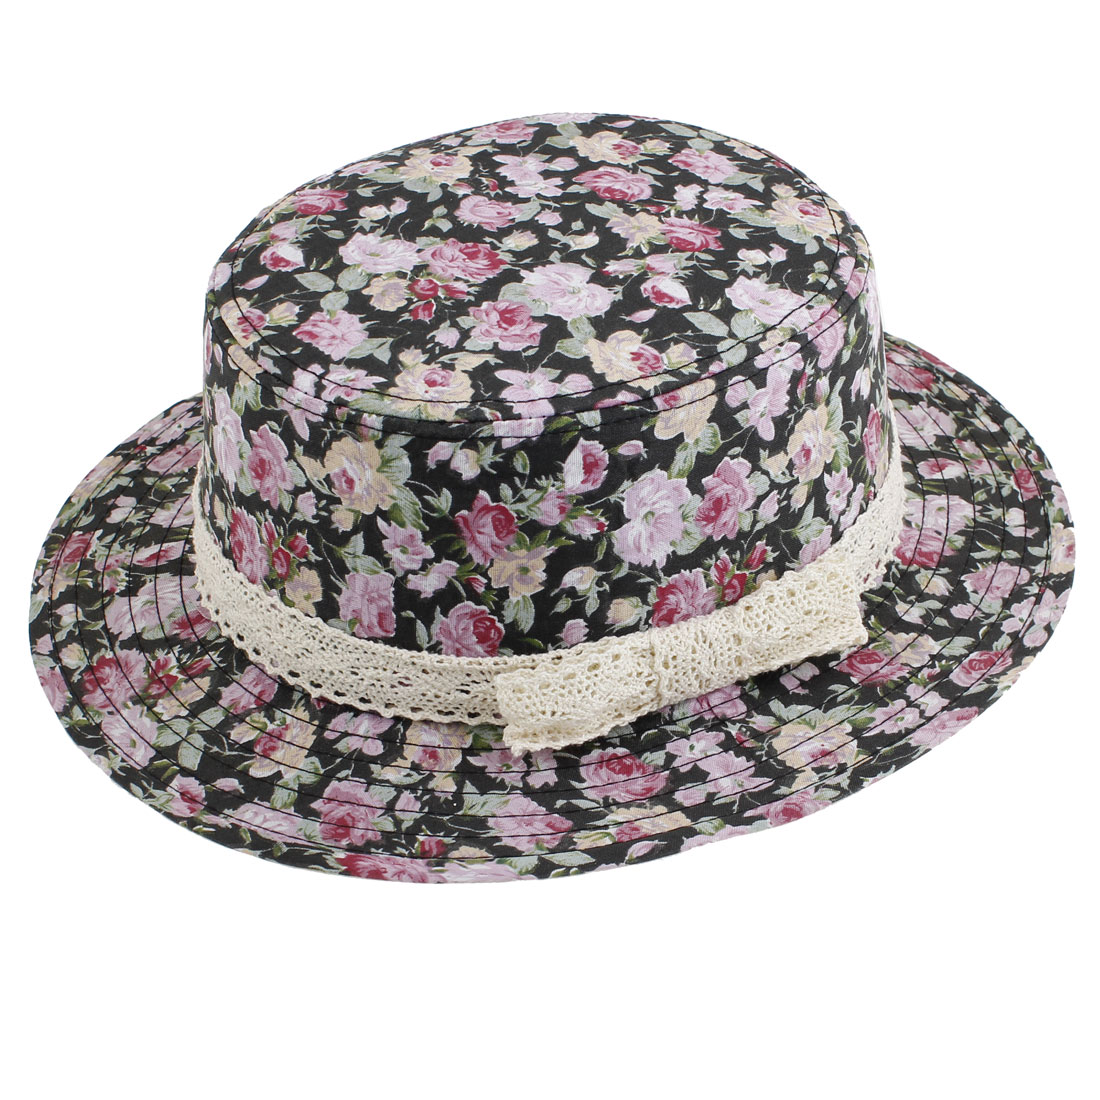 Outdoor Sports Floral Prints Flat Top Hat Red Black for Woman